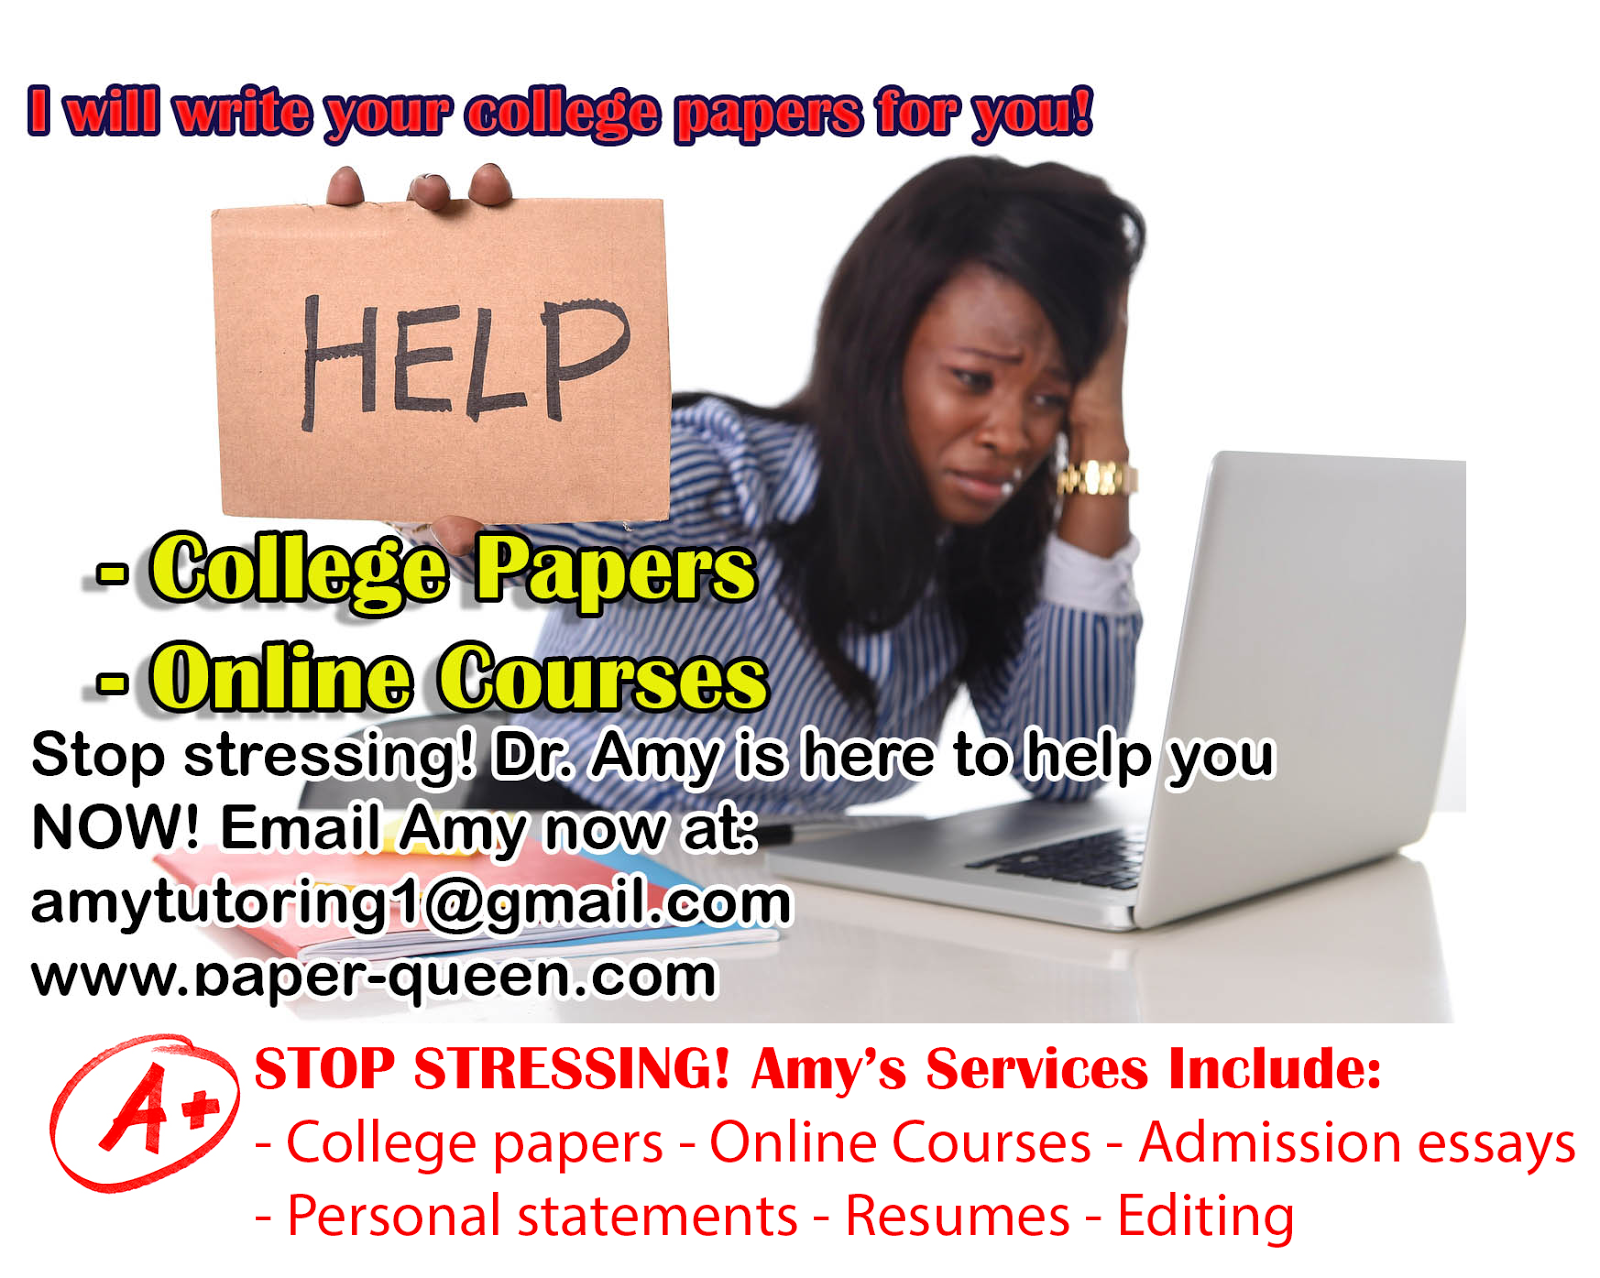 College papers help email